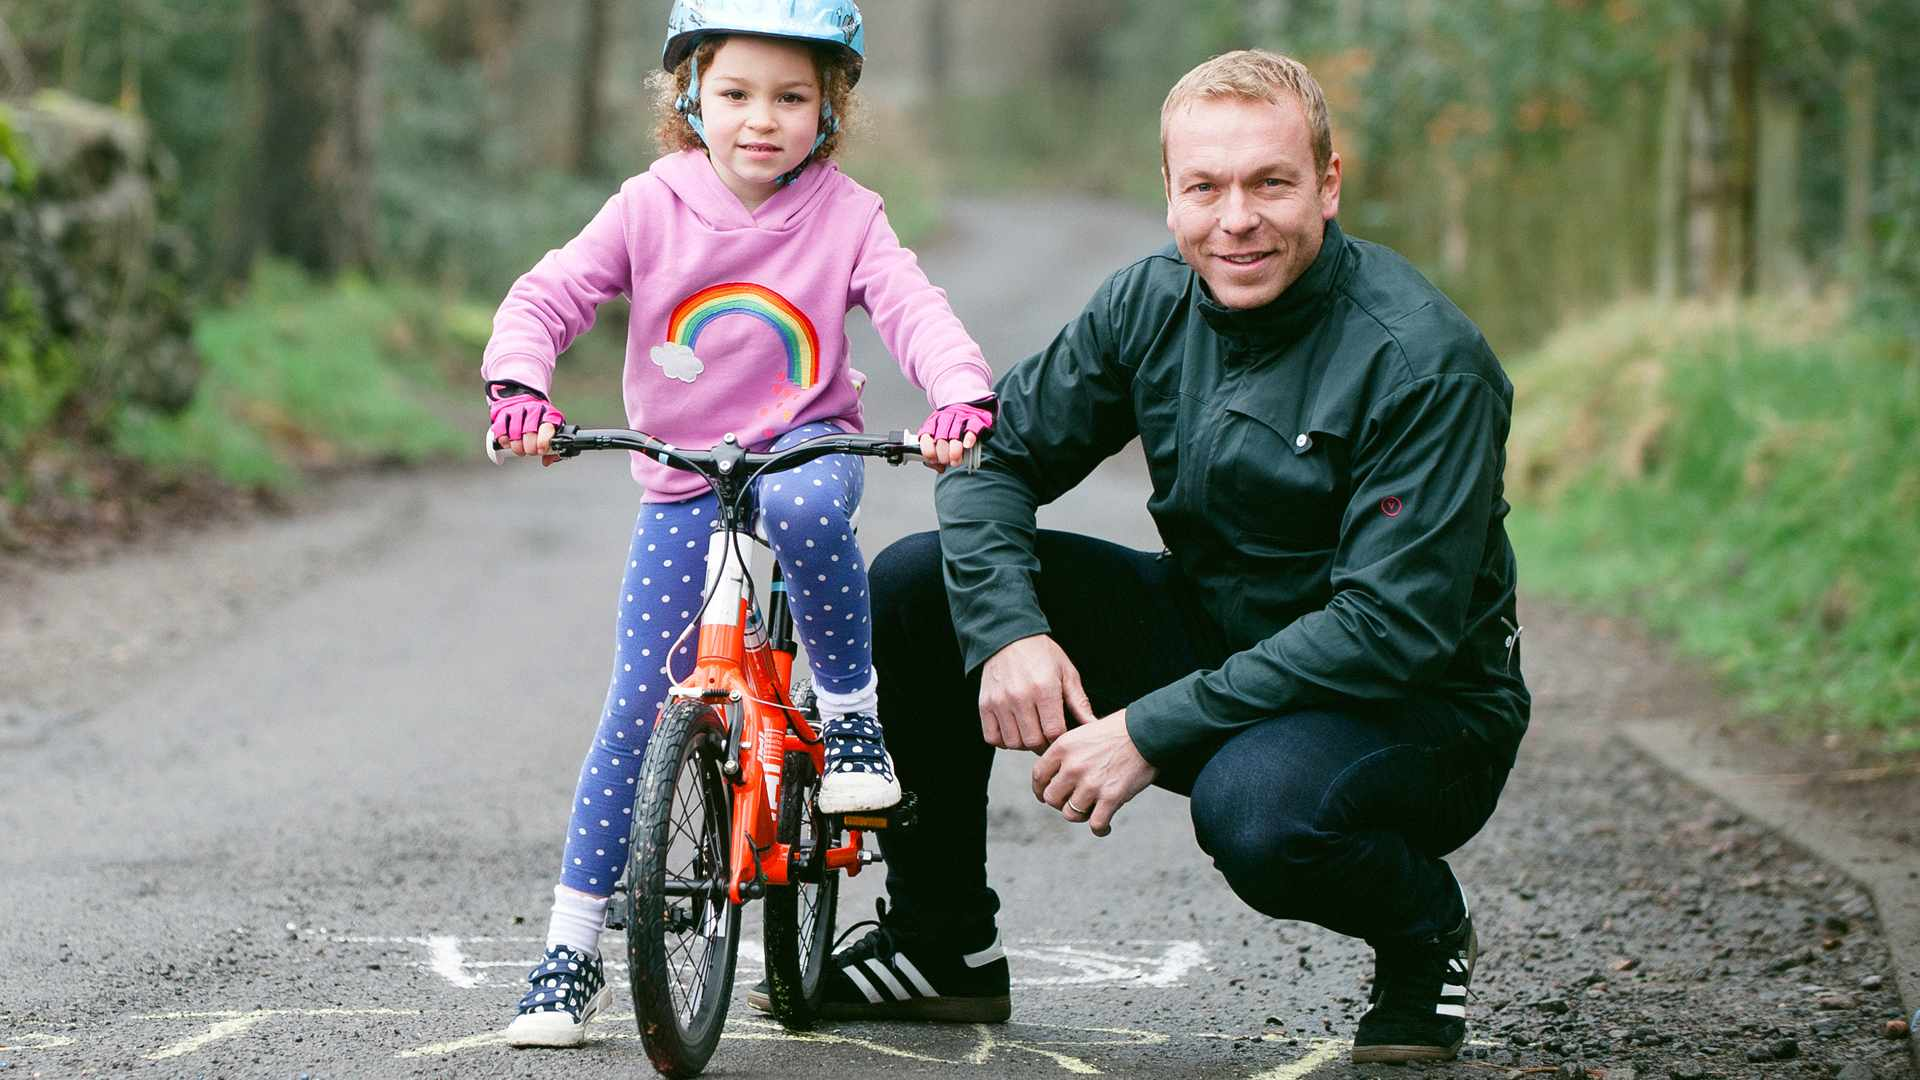 Sir Chris Hoy will be inspiring youngsters at this year's London Bike Show